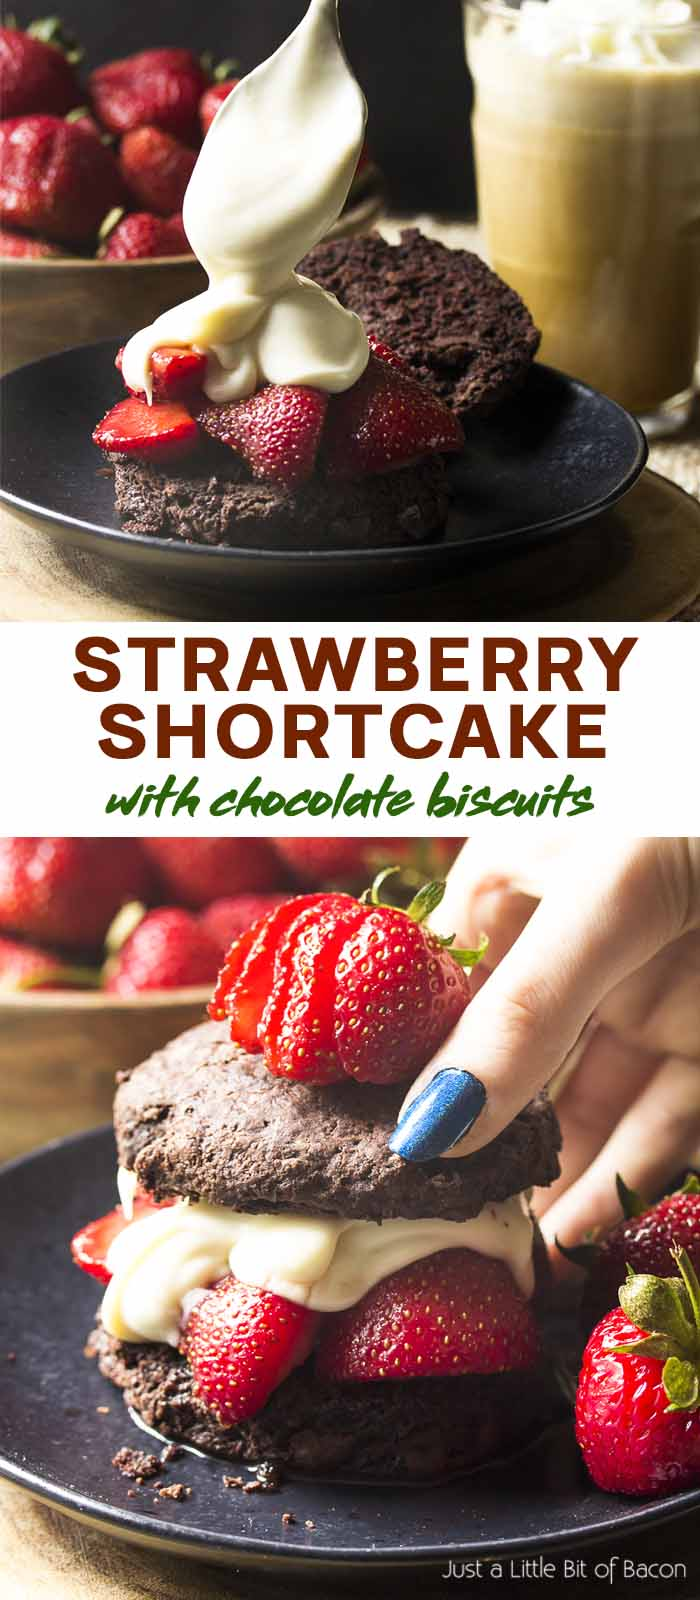 Two views of the recipe with text overlay - Strawberry Shortcake with Chocolate Biscuits.